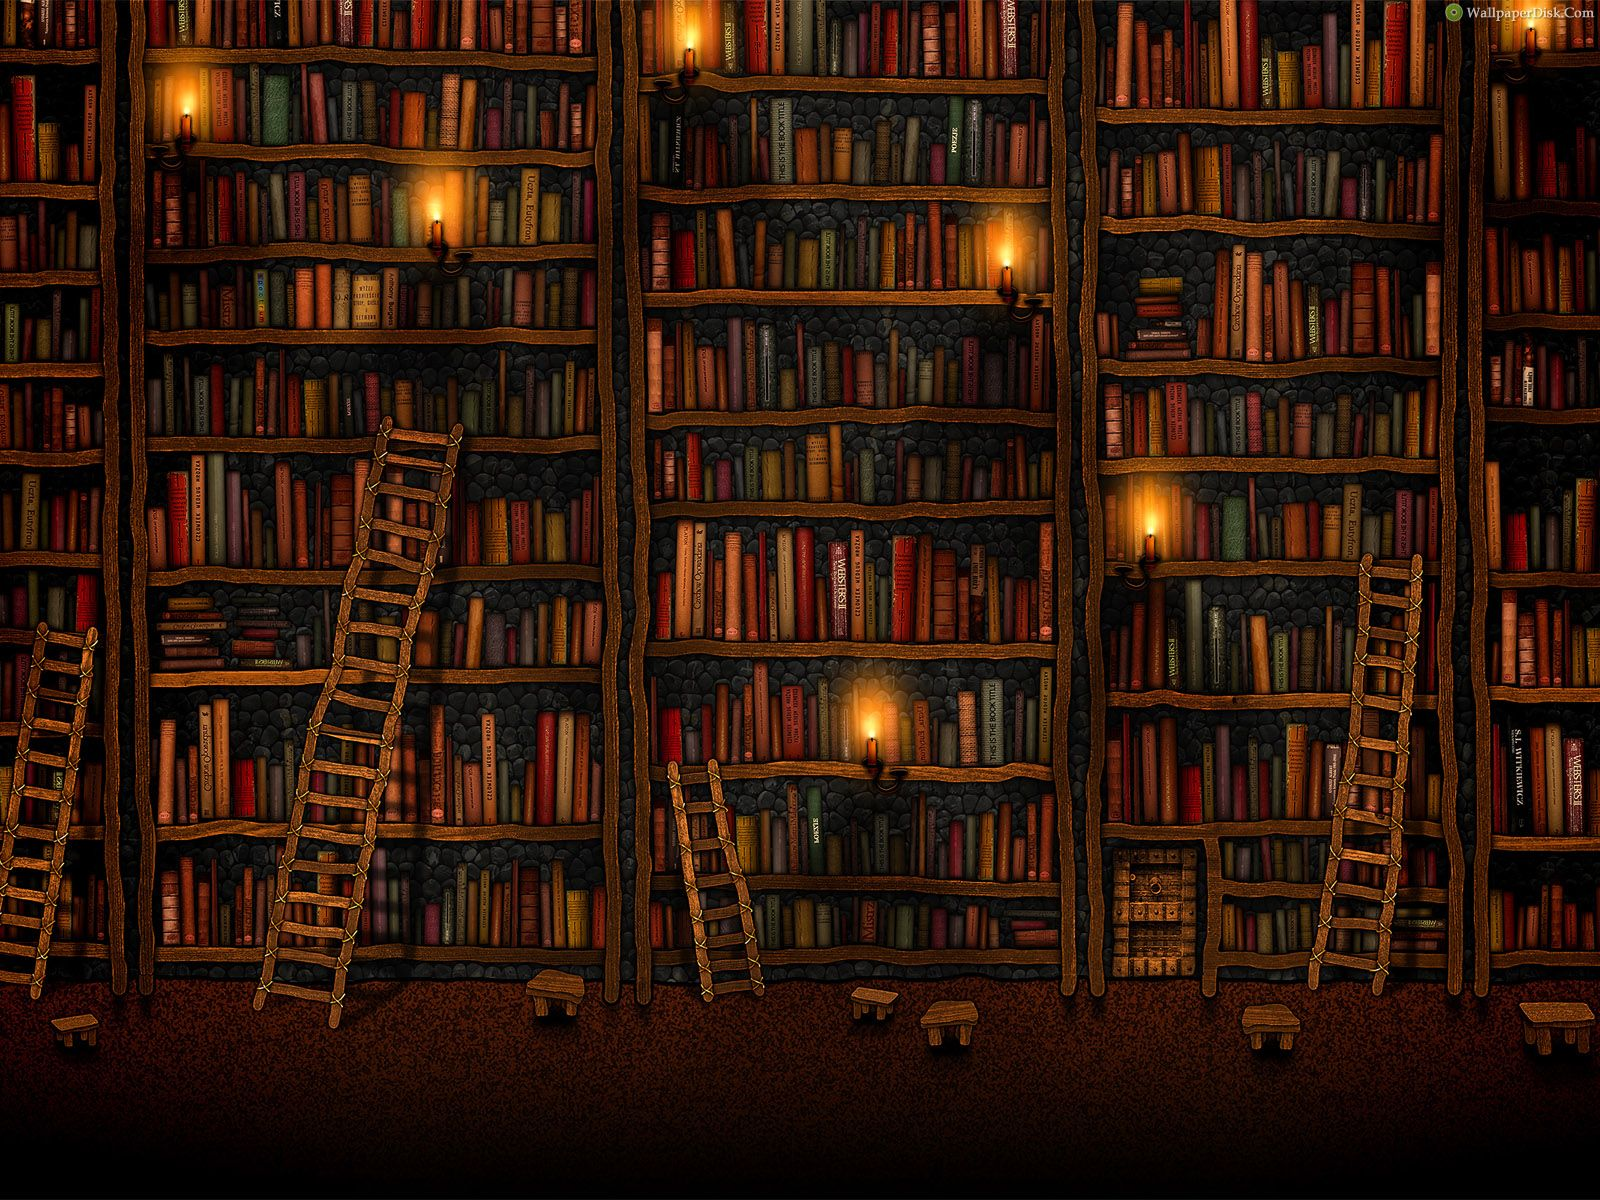 Background Poster Pics: Background Of A Library